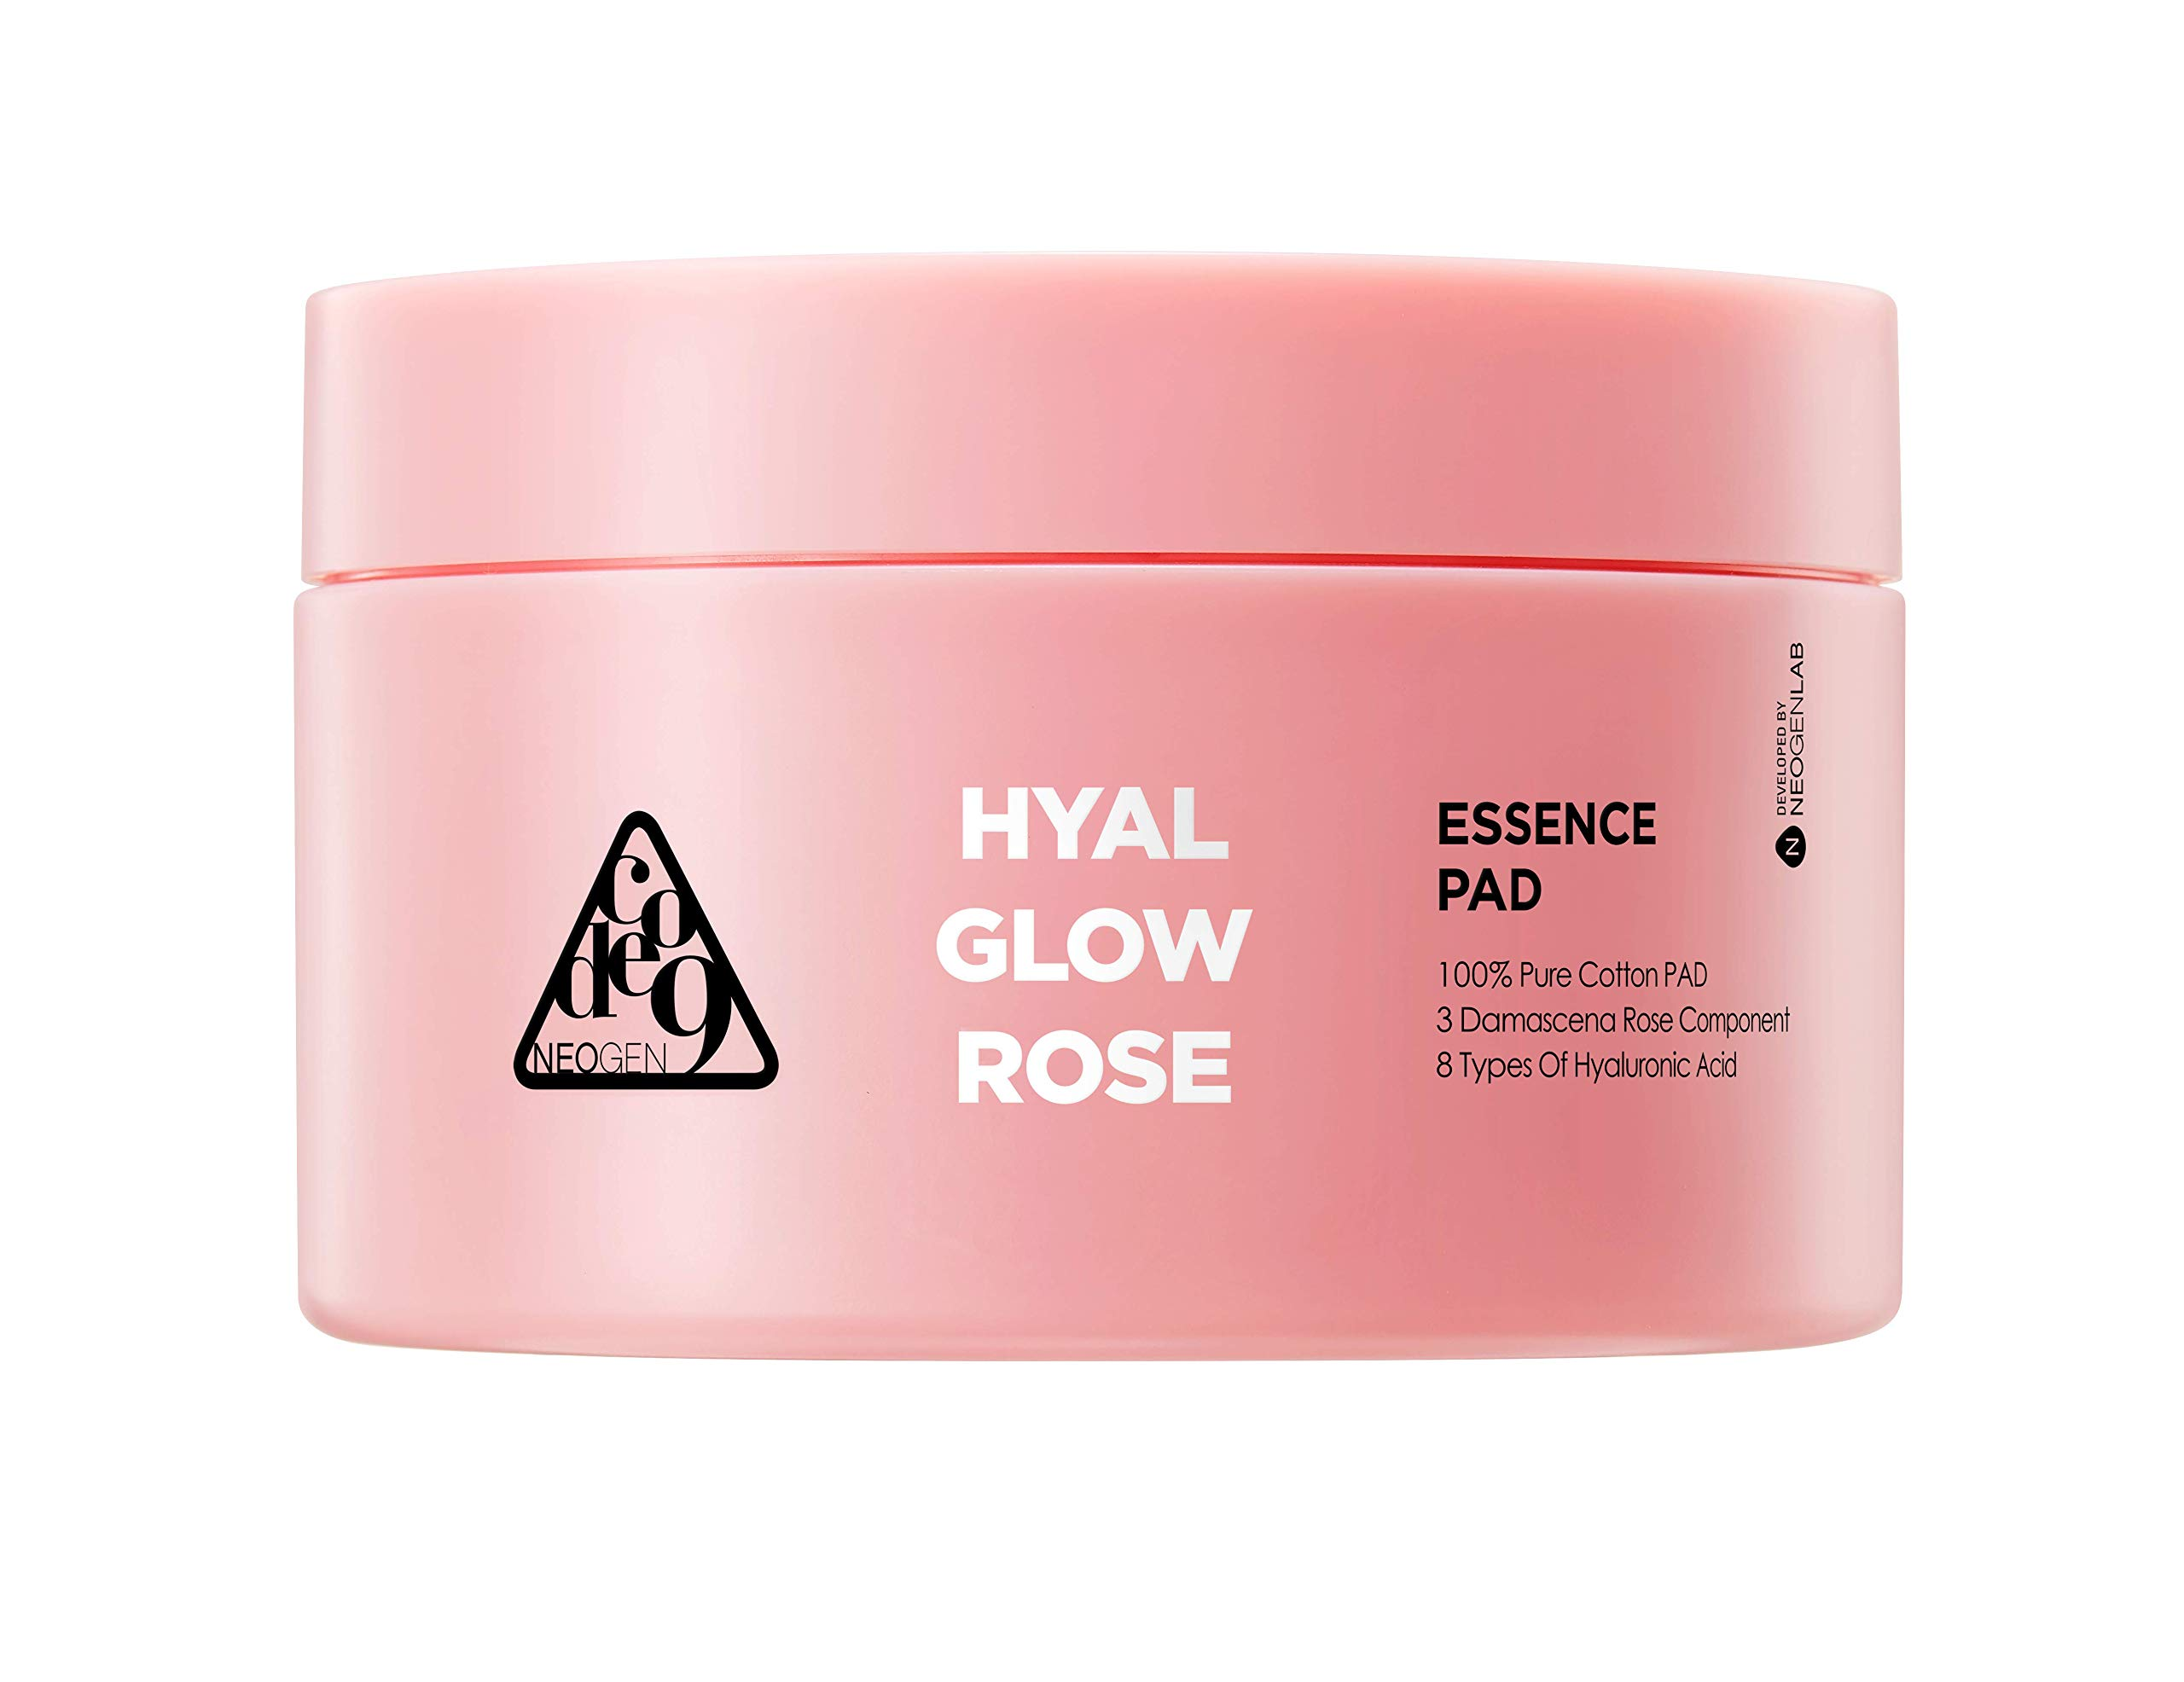 NEOGEN CODE9 Hyal Glow Rose Daily Essence Pads - Powerful Rosen Cream, Rose Flower Water 74%, Hyaluronic Acid Complex, 70 Pads, 4.56 oz